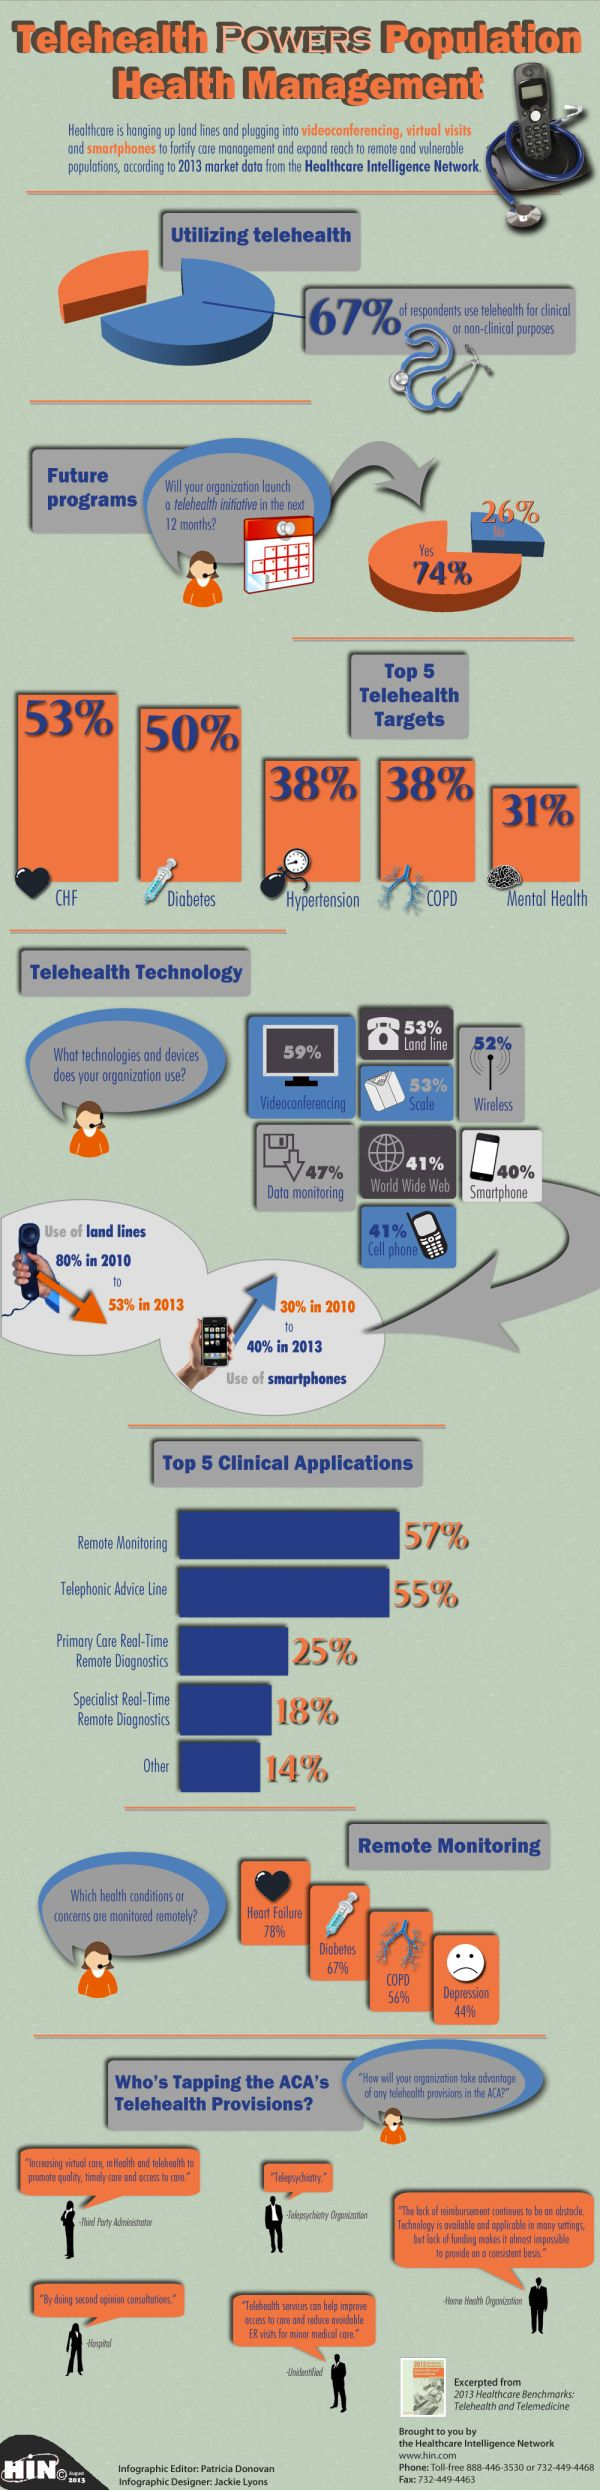 Telehealth powers Population Health Management #Infographic, Population Health, Telehealth